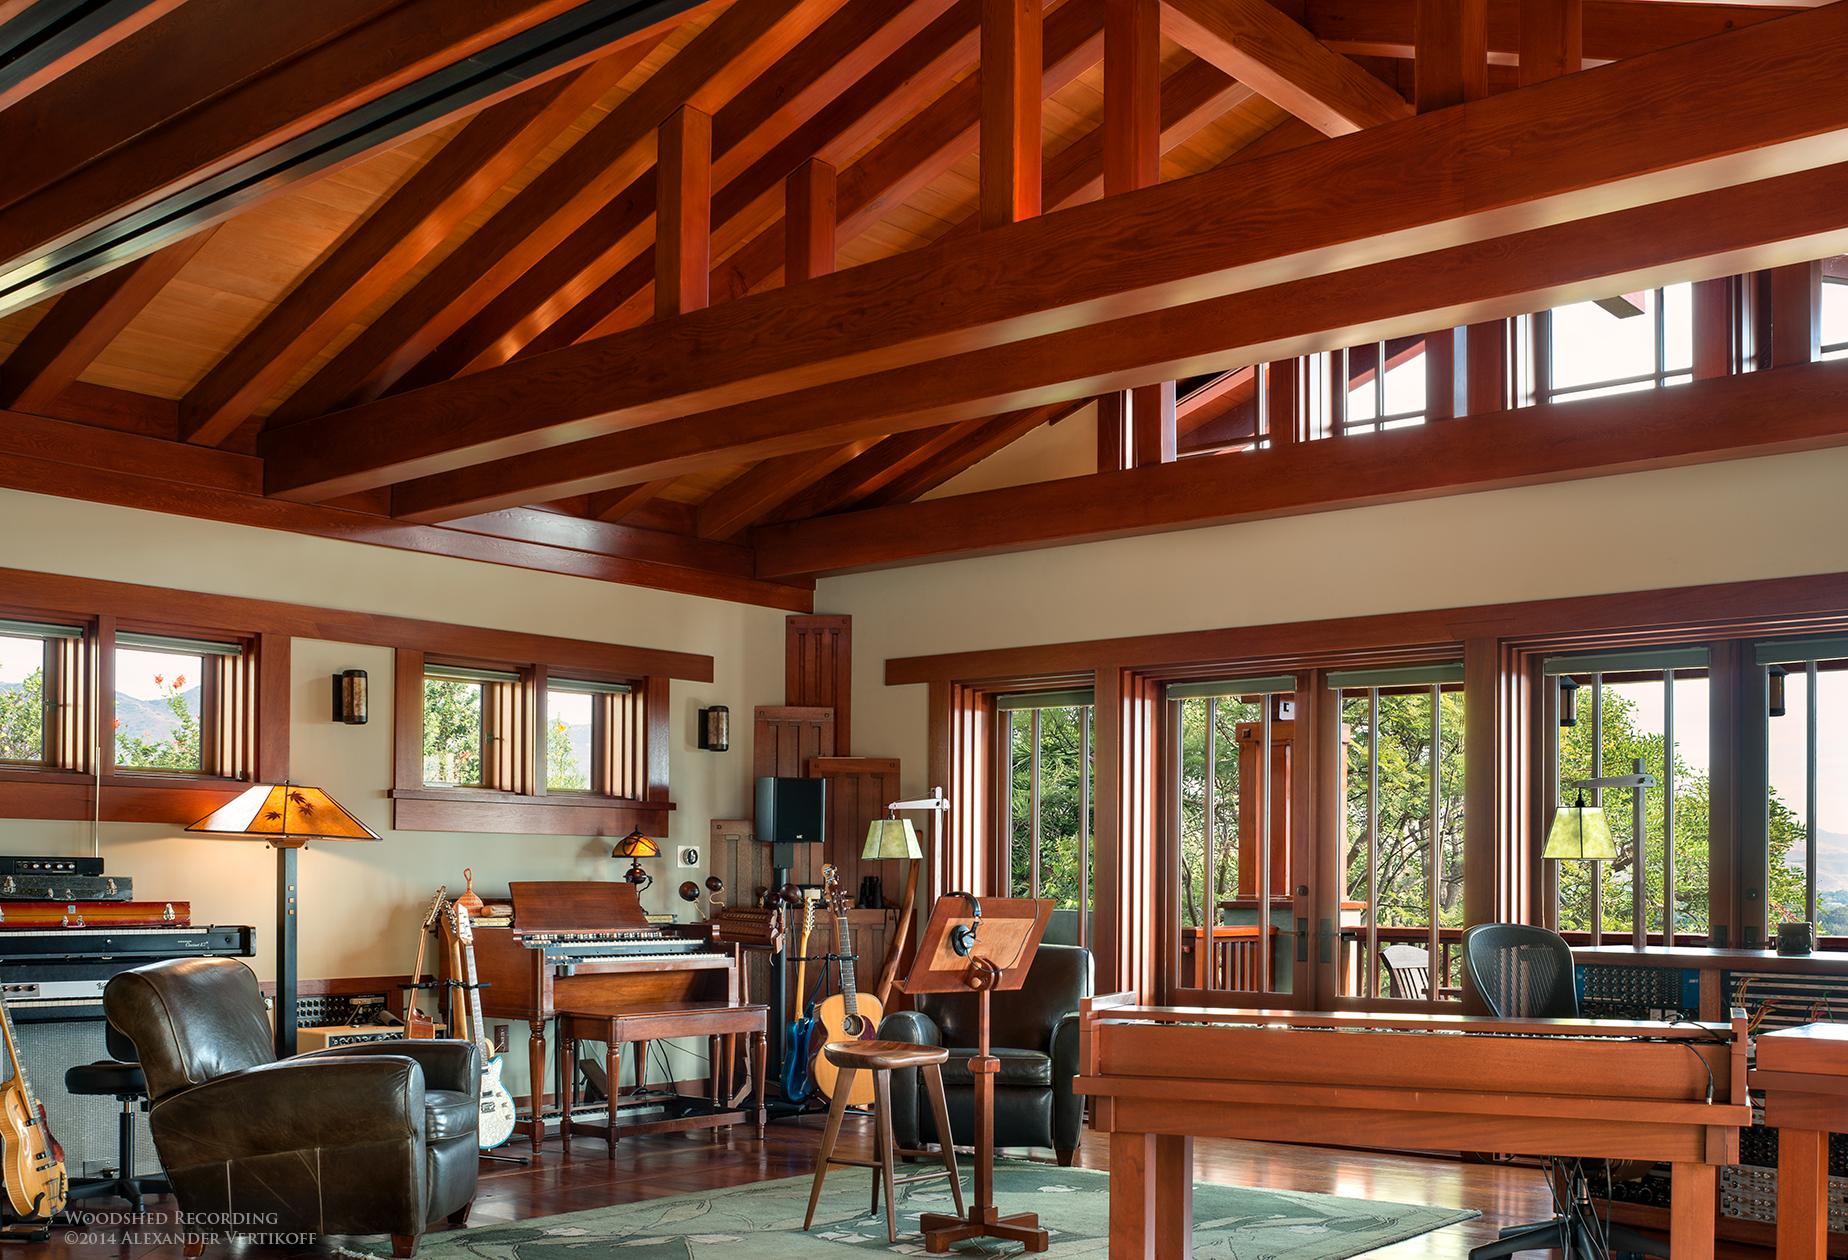 - The very nearly mythical Woodshed Recording is home to many illustrious musicians.The modular design, serene Malibu environment and solar-powered aesthetics provide a unique recording experience which is globally renowned.